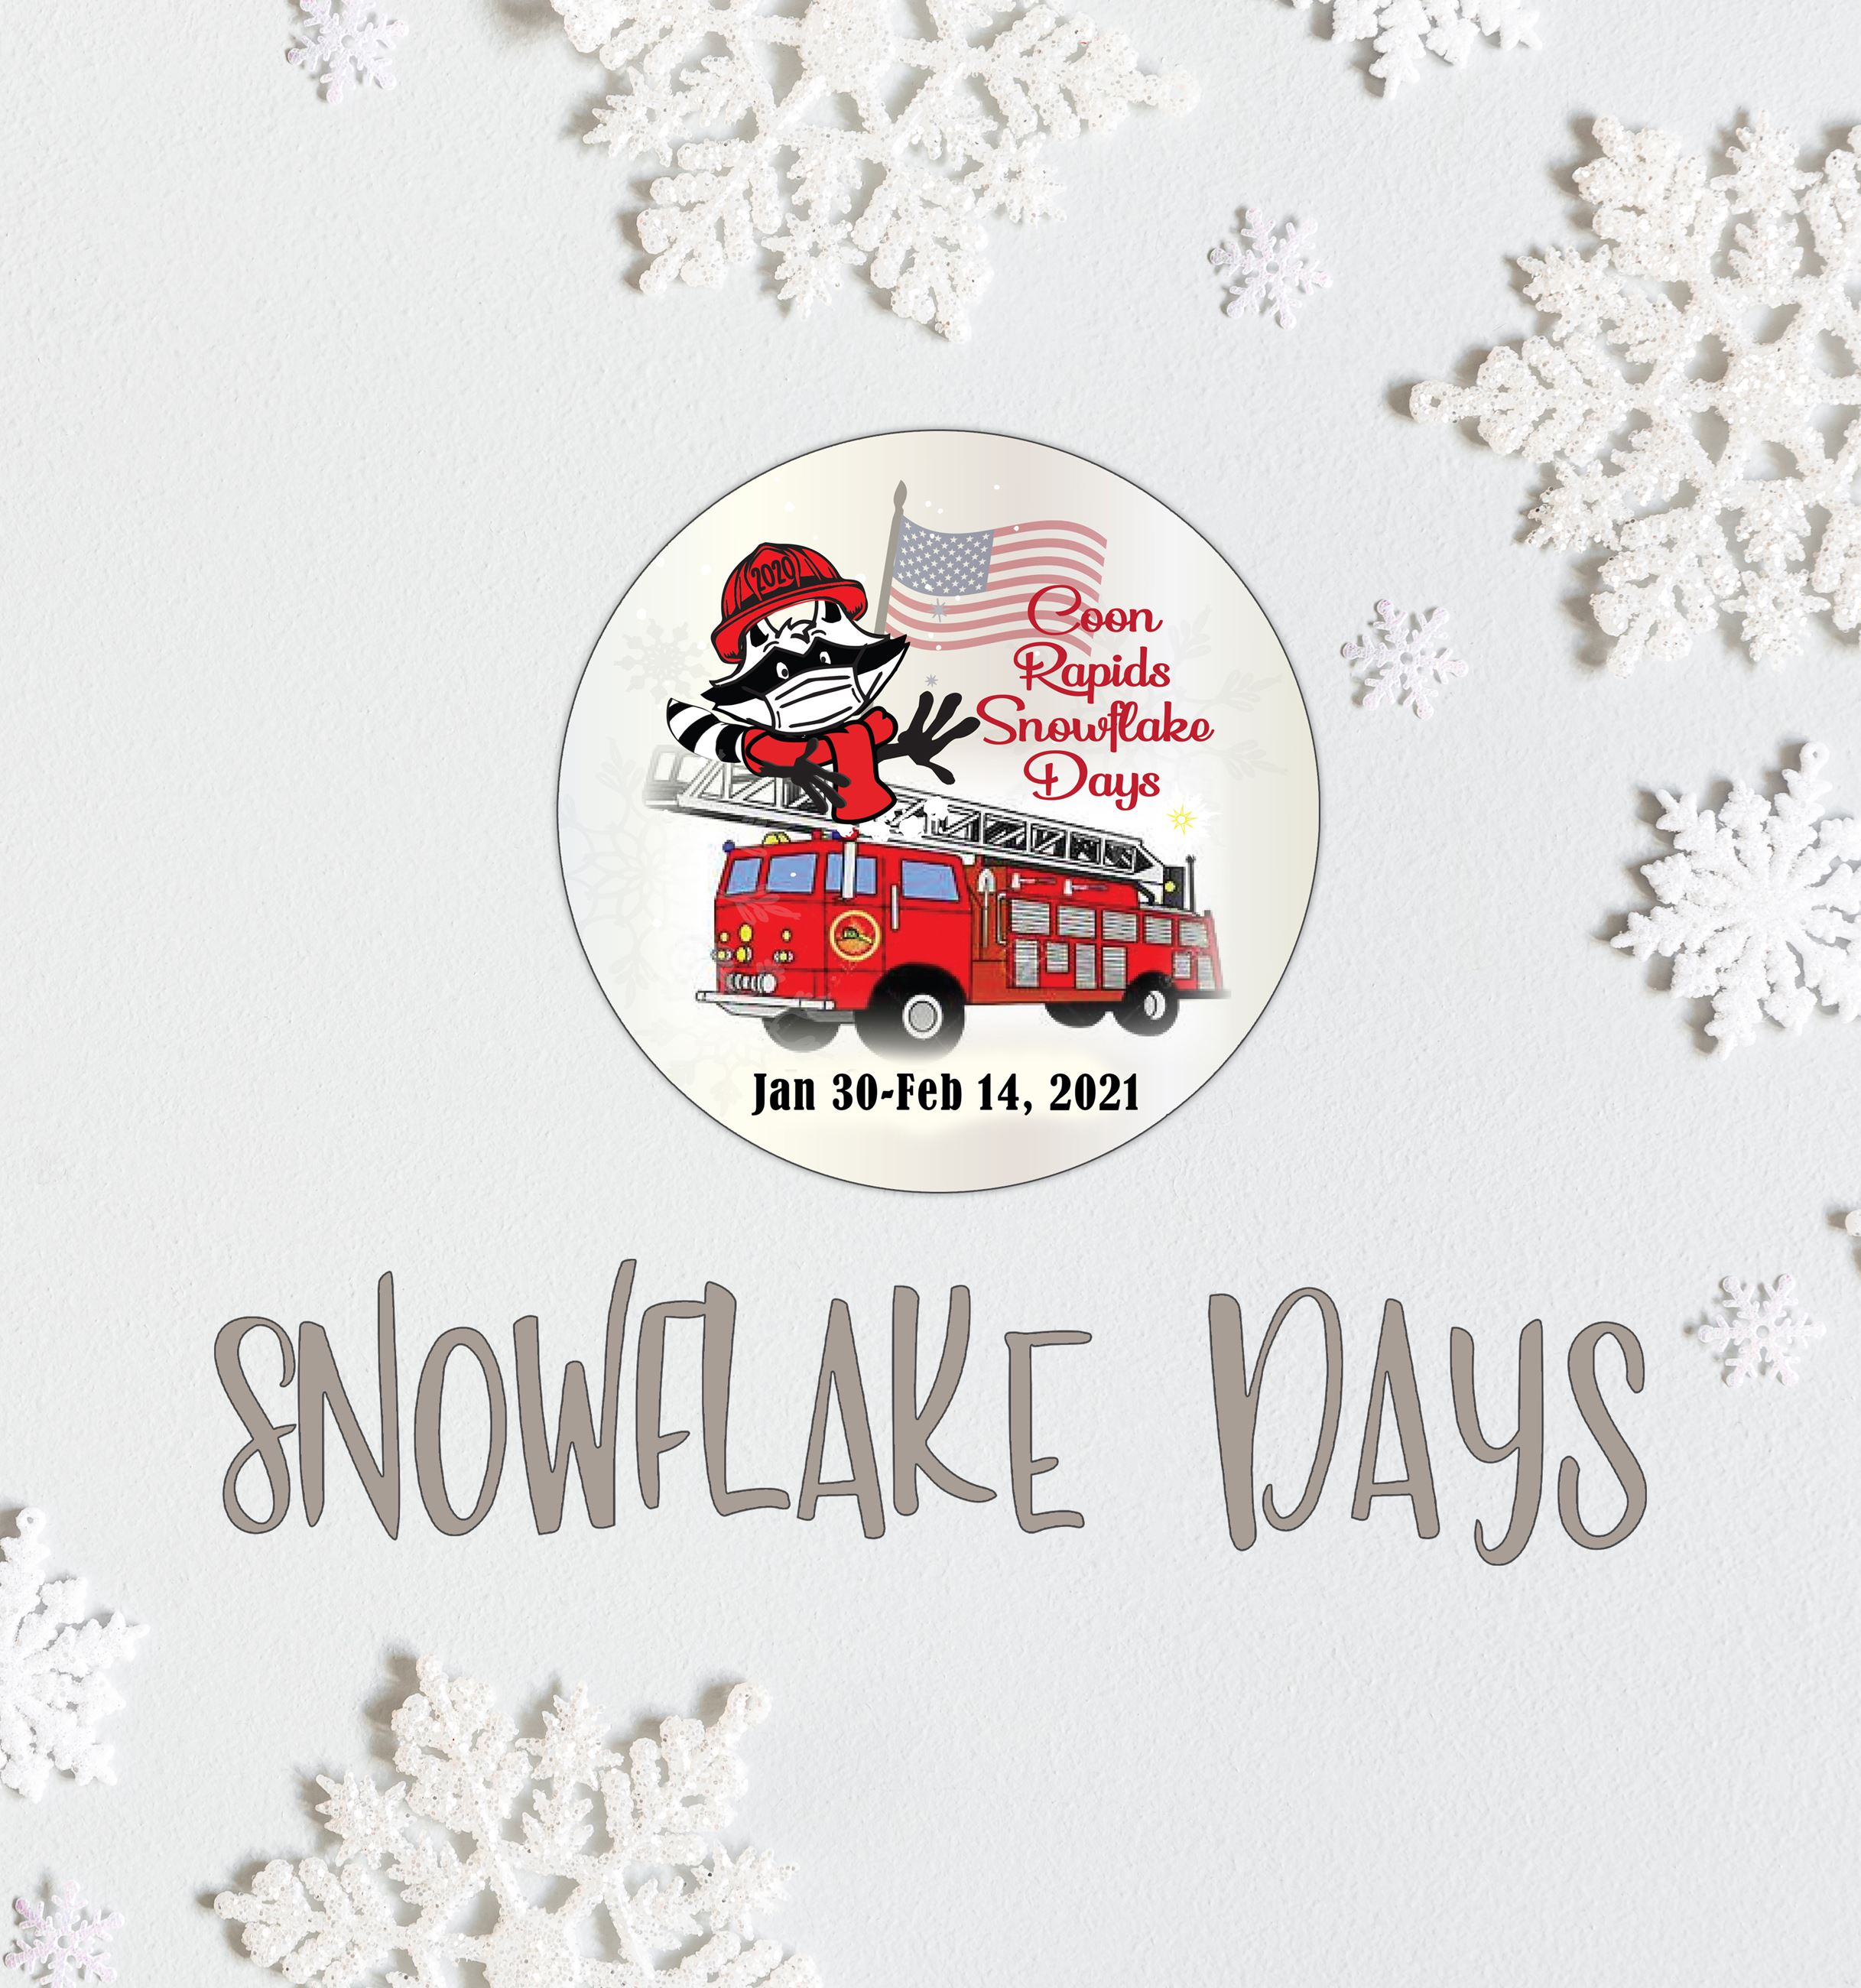 Snowflake Days Event